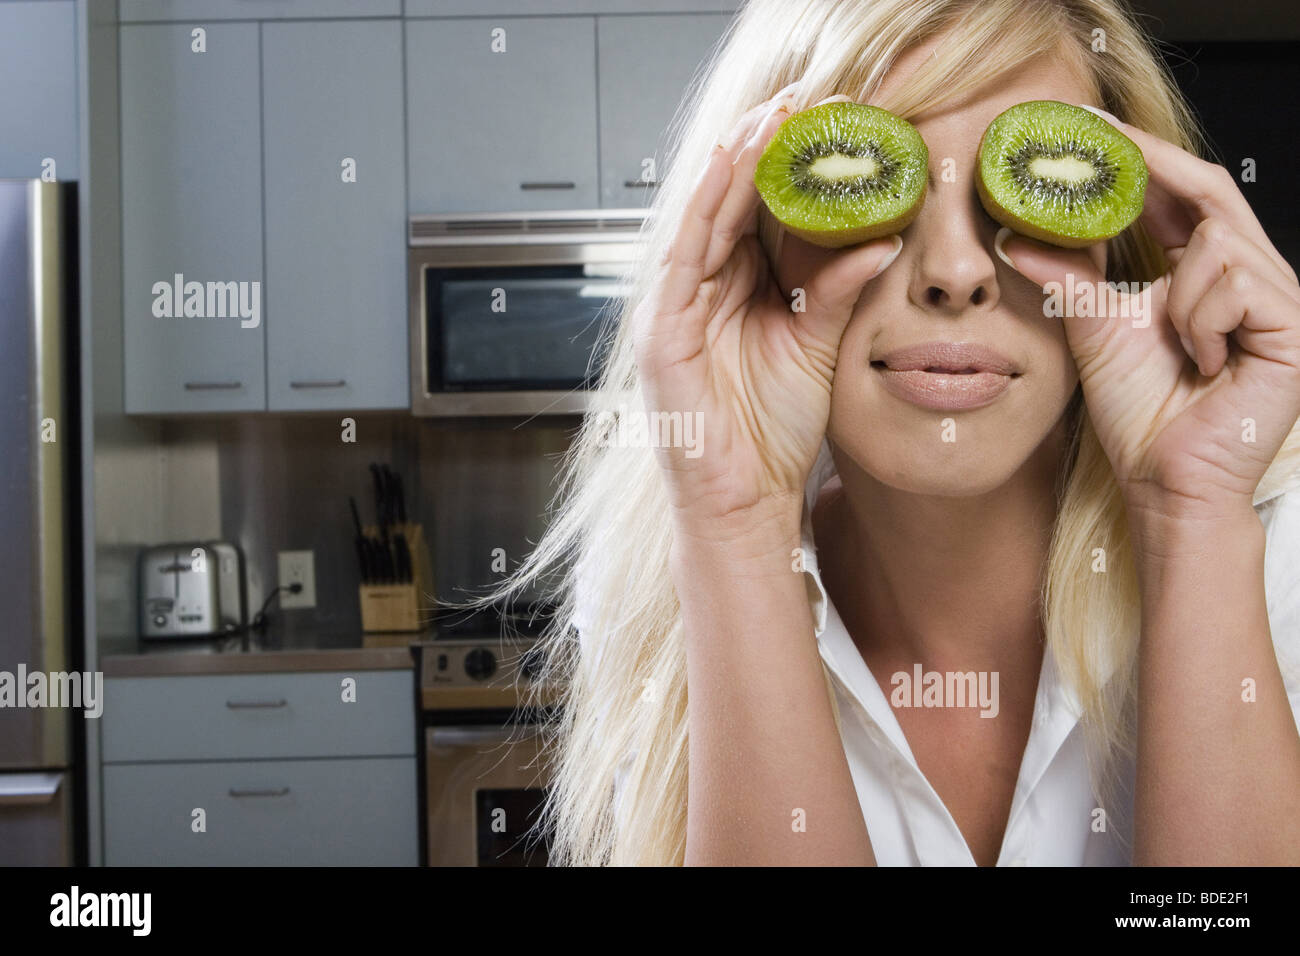 Young woman acting goofy while preparing a meal - Stock Image